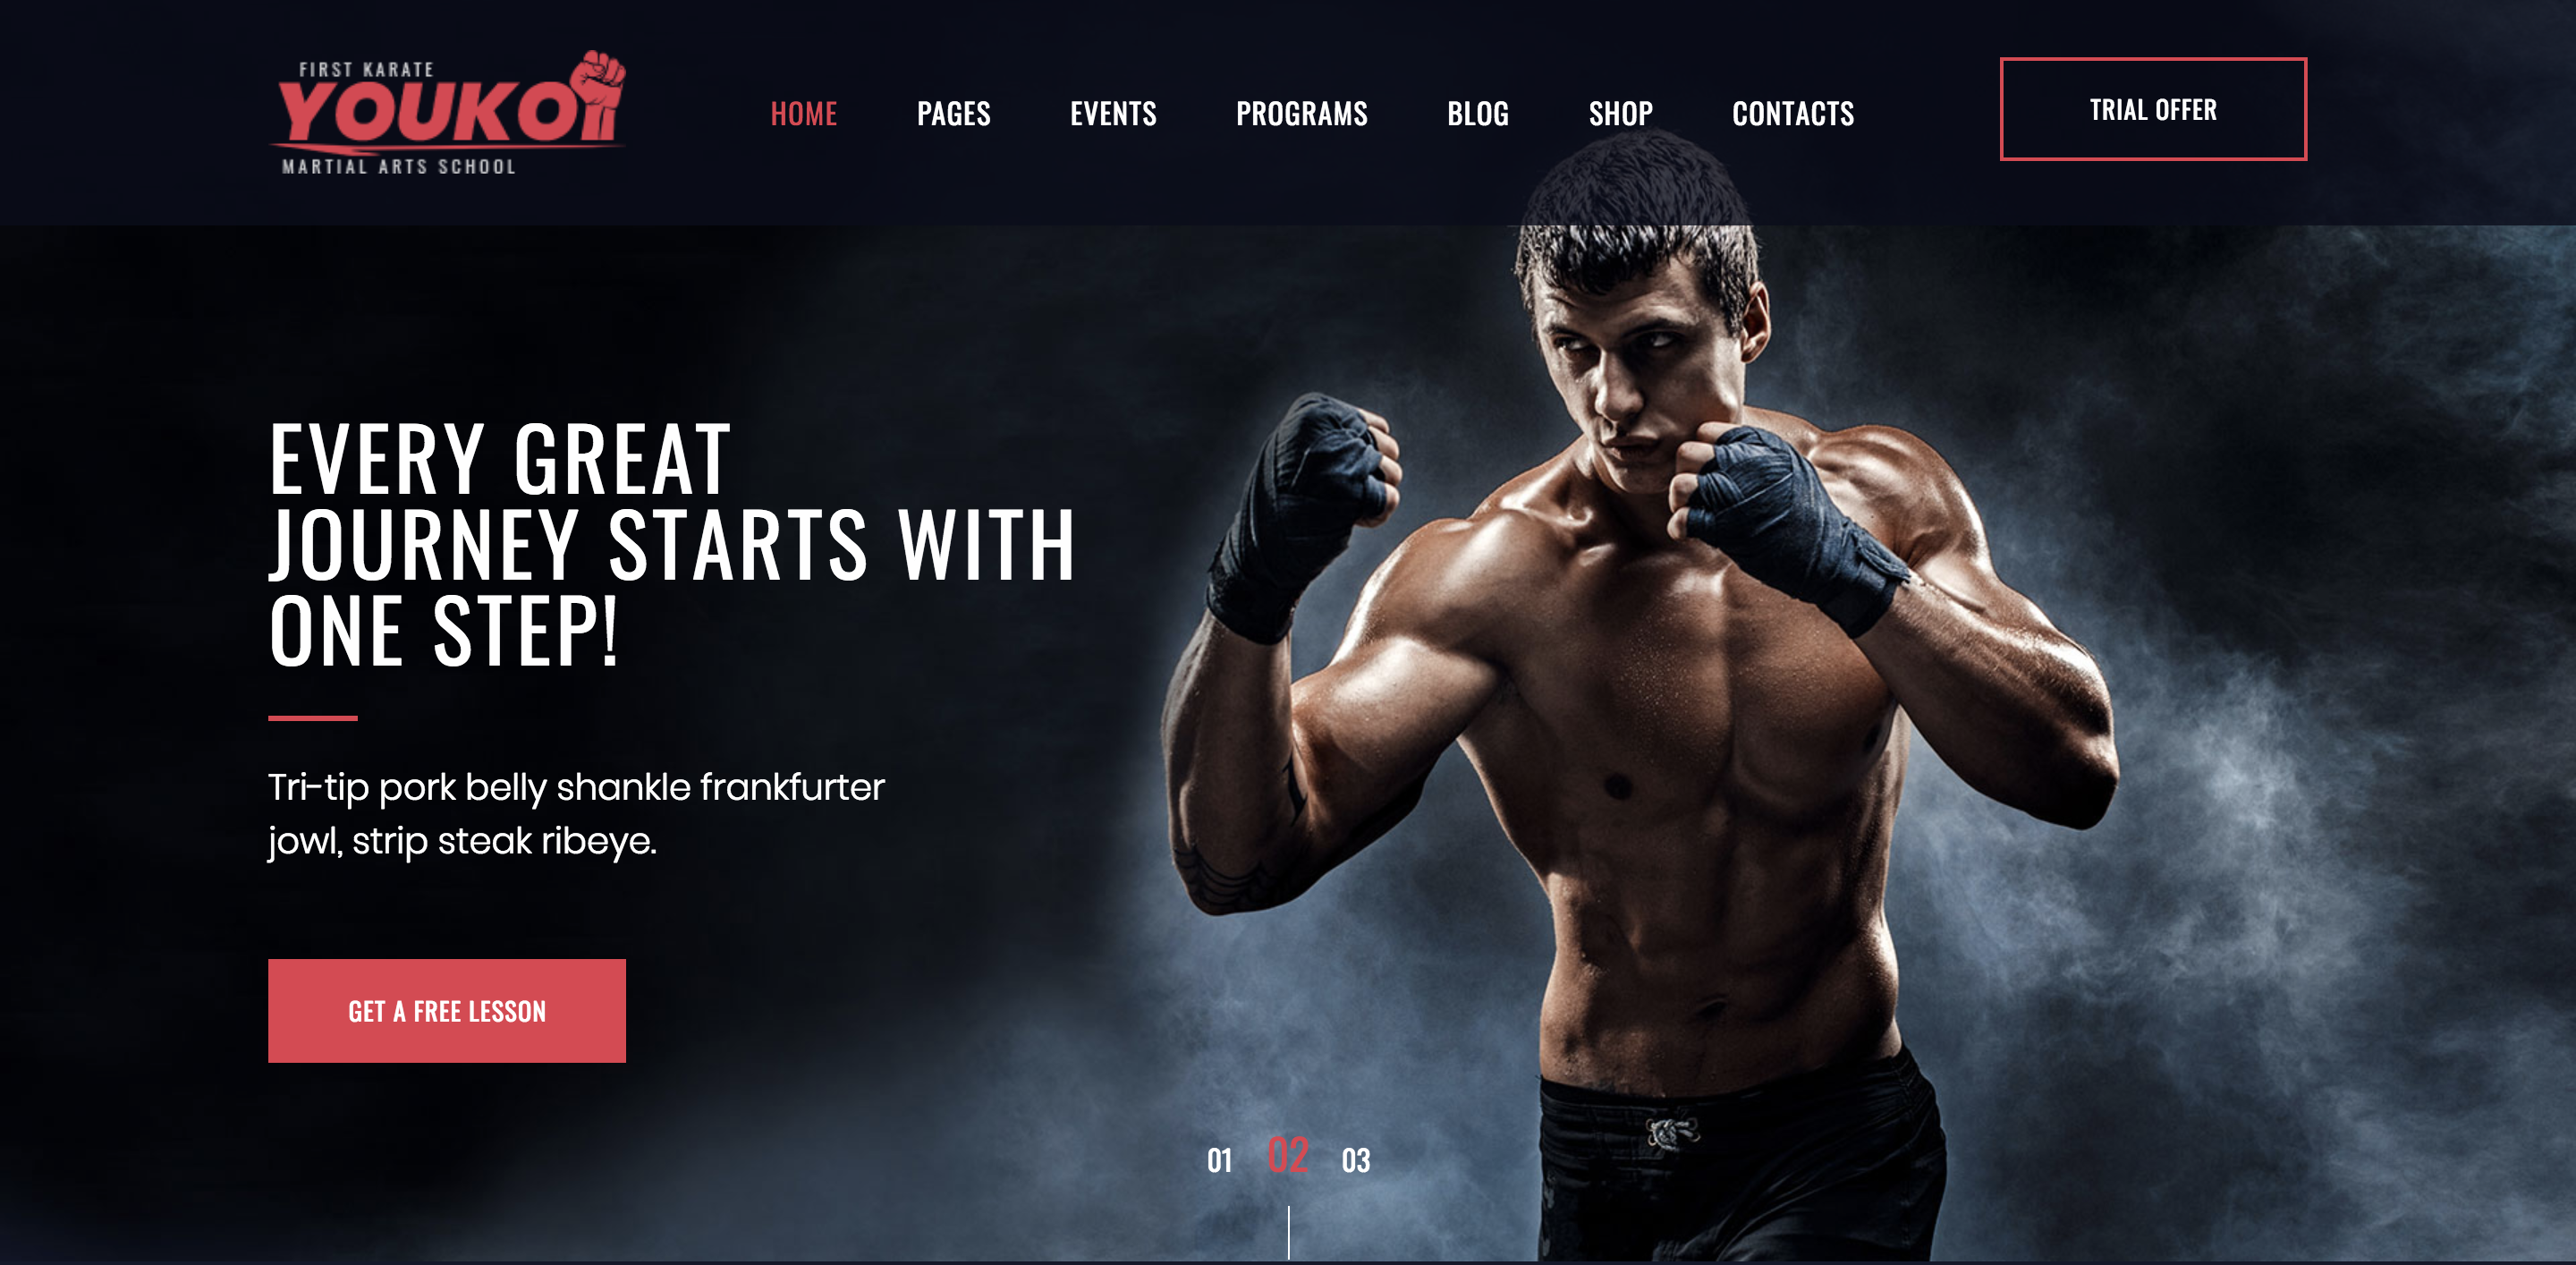 Youko - Martial Arts School WordPress Theme.png